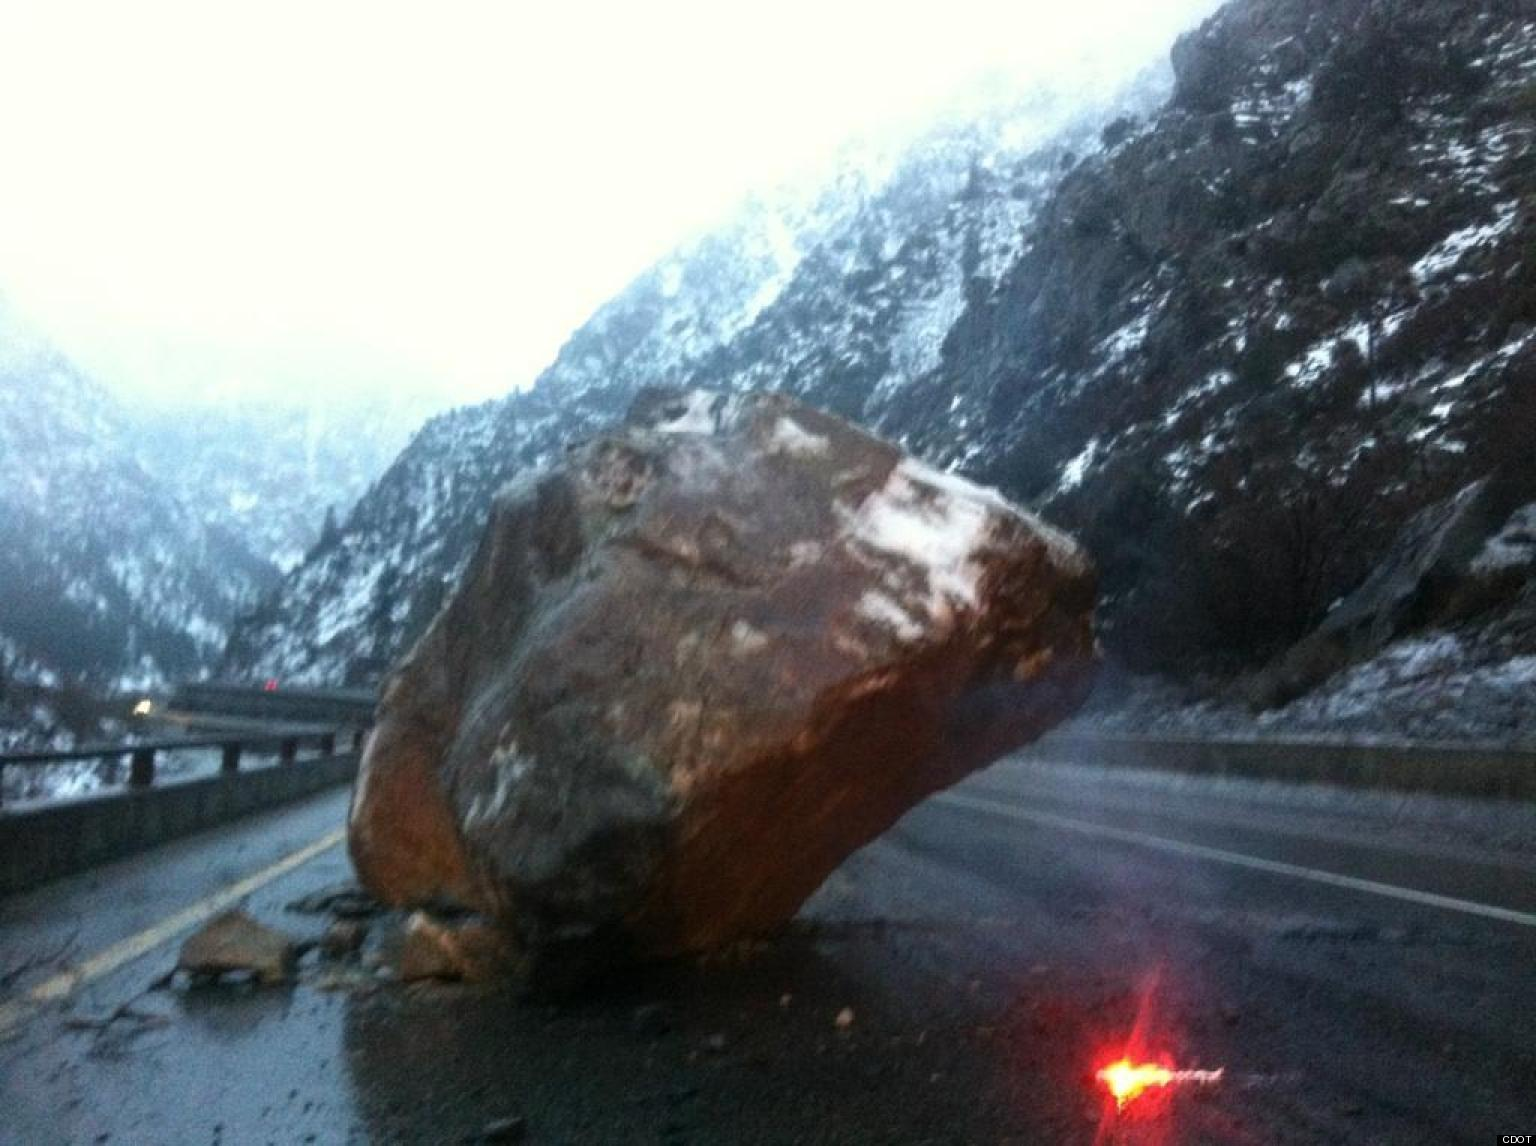 Colorado Springs College >> Large Boulder Falls, Causes Closures On Westbound I-70 In Colorado (PHOTO)   HuffPost